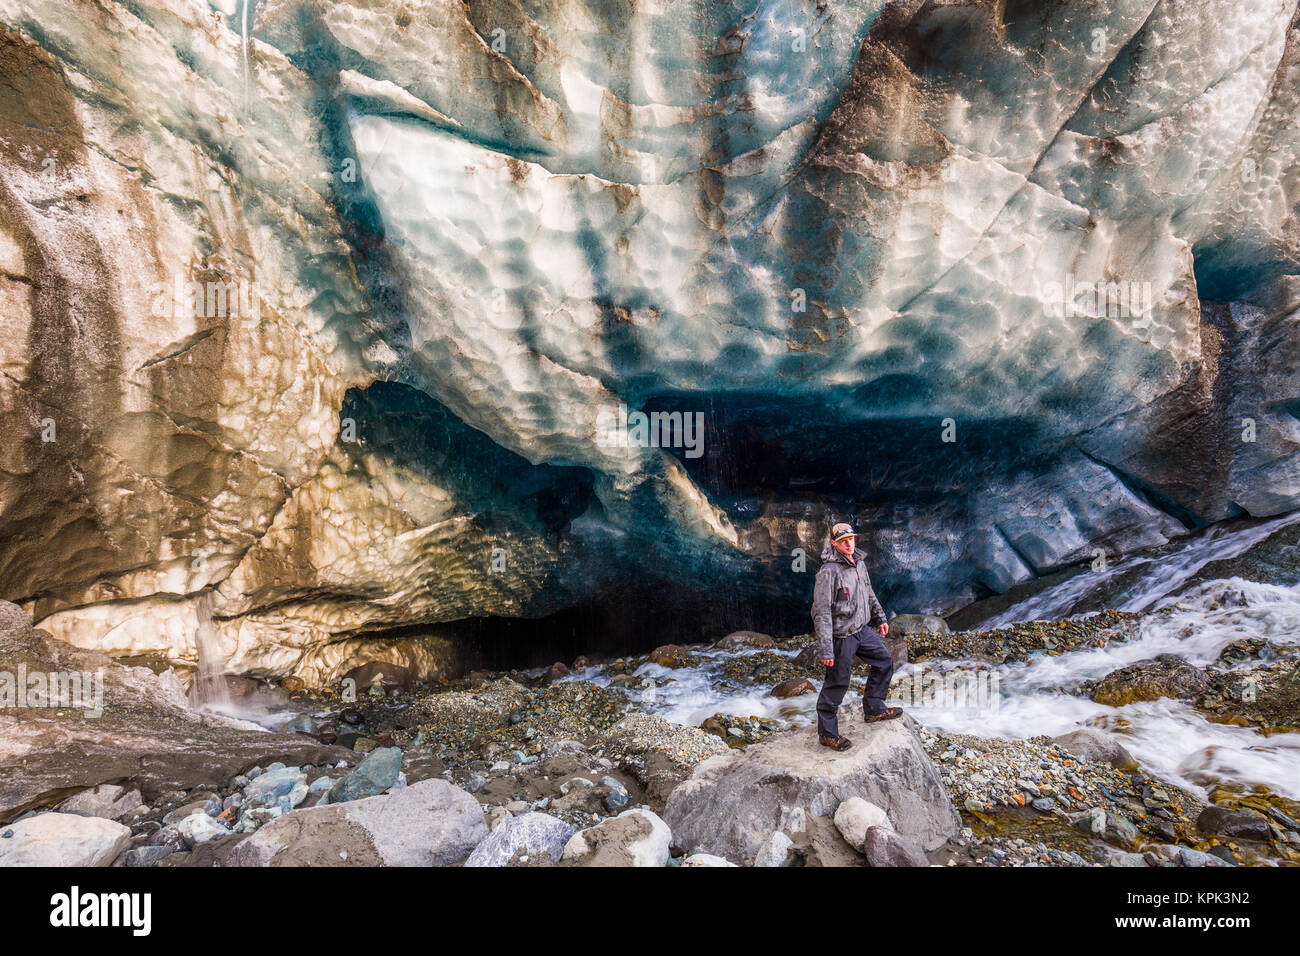 A man surrounded by rushing water poses in front of a cave beneath the ice of Root Glacier in Wrangell-St. Elias - Stock Image